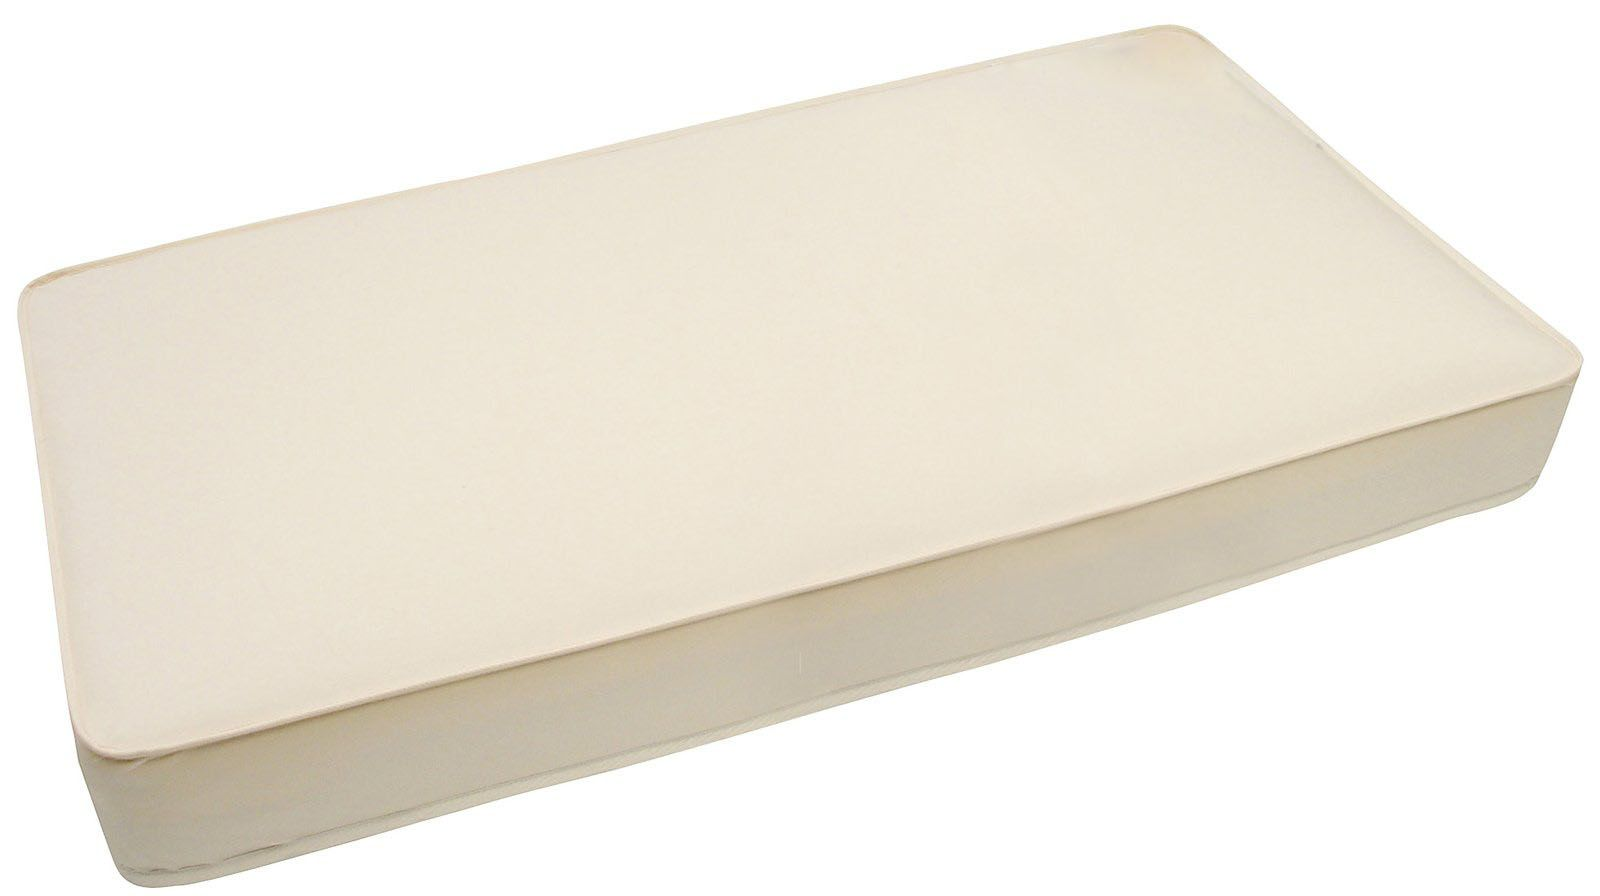 Cotbed Deluxe Mattress & Organic Cover